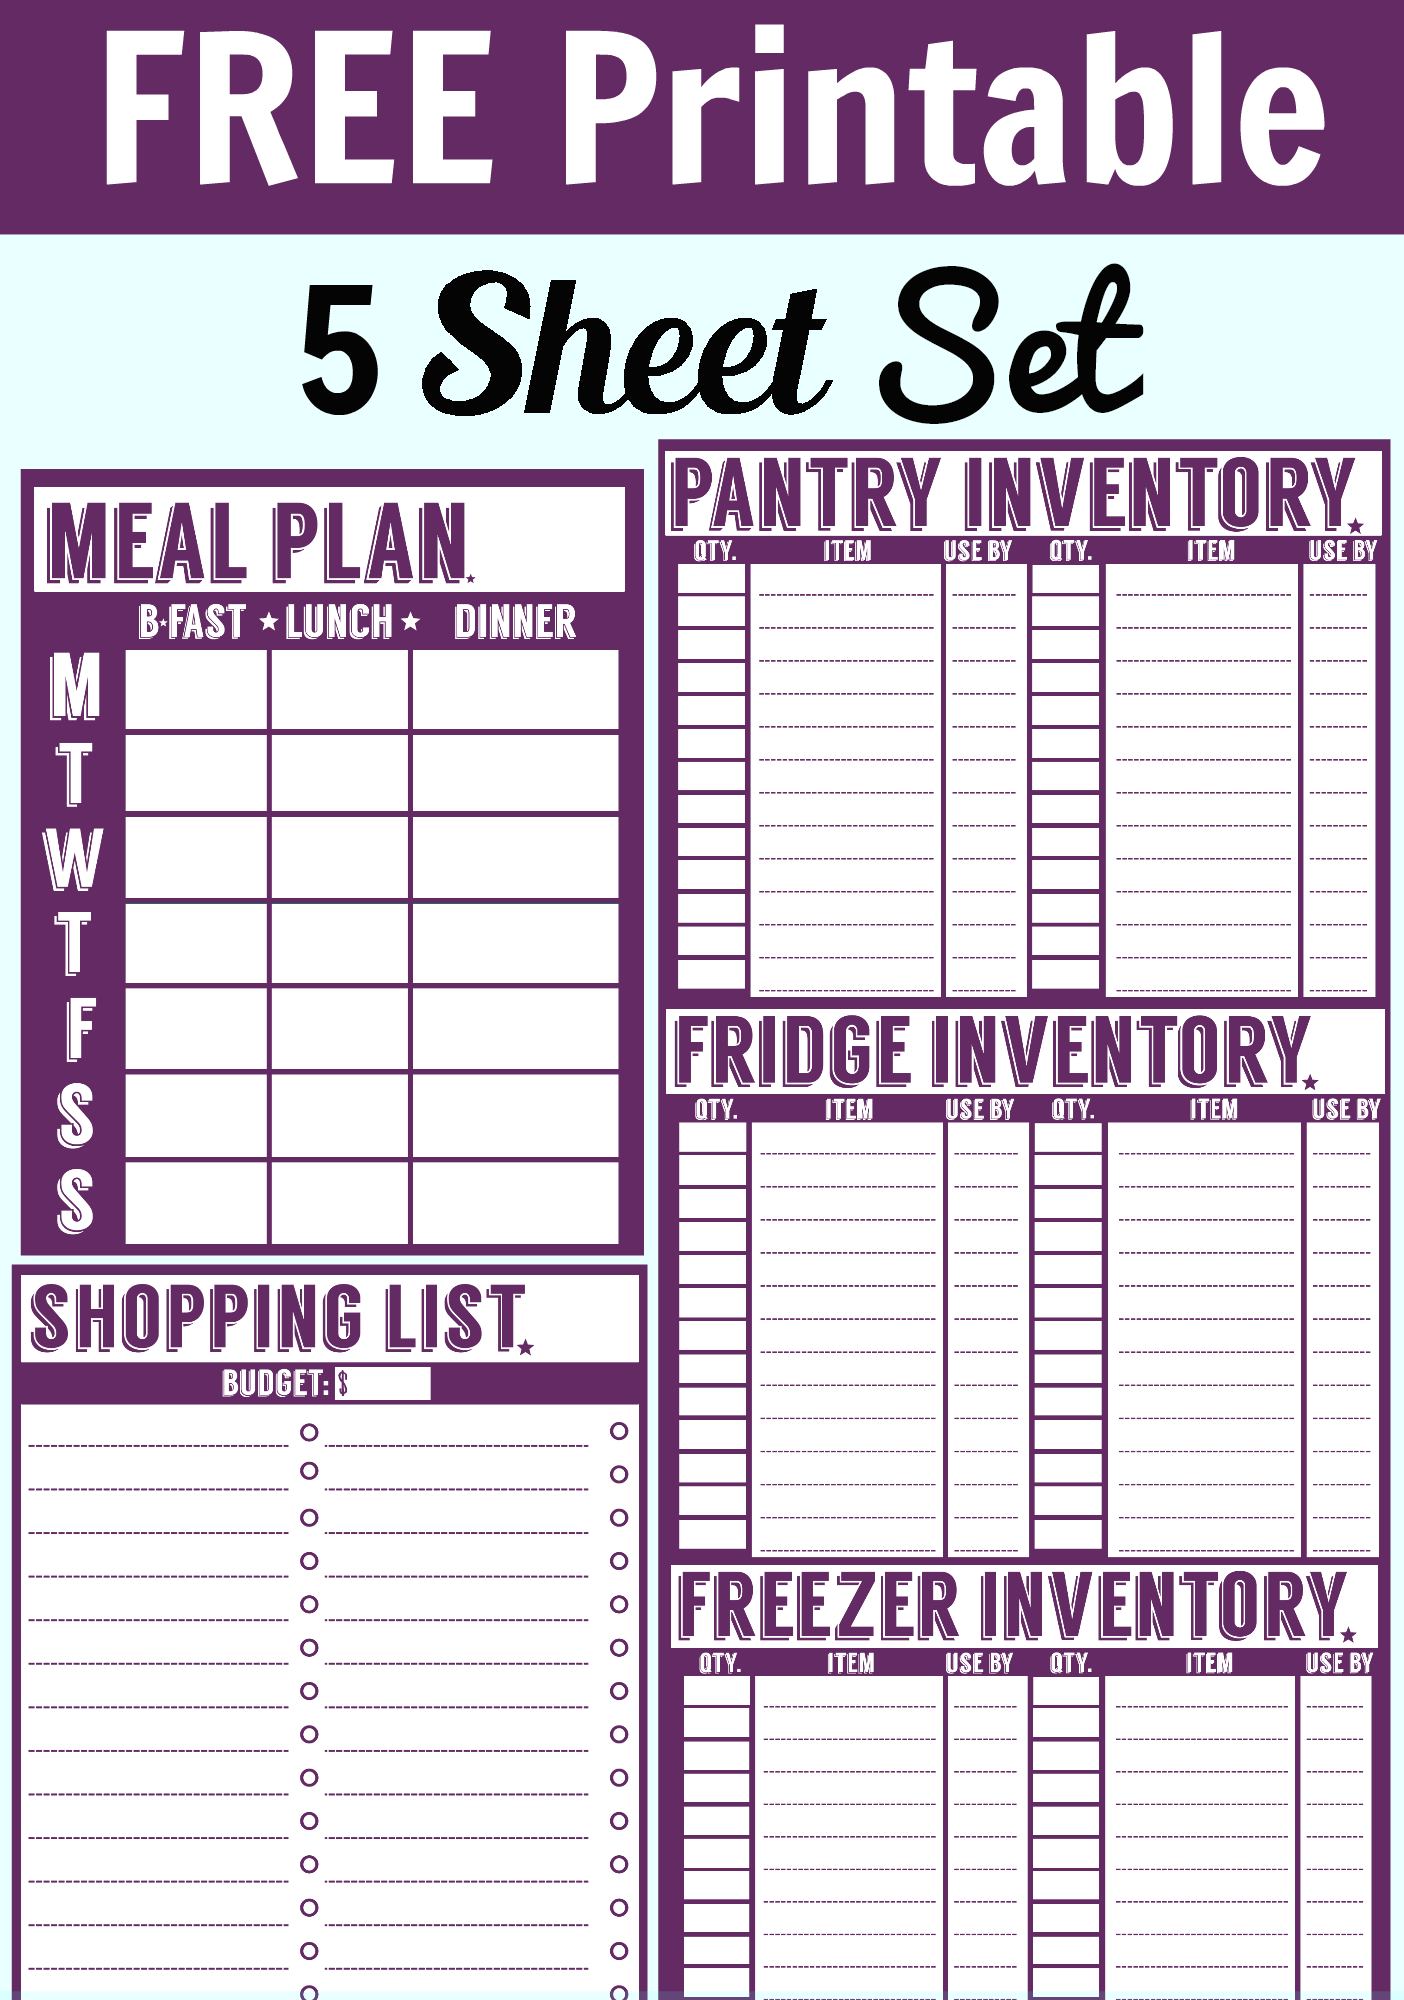 free printable menu planner shopping list inventory sheets